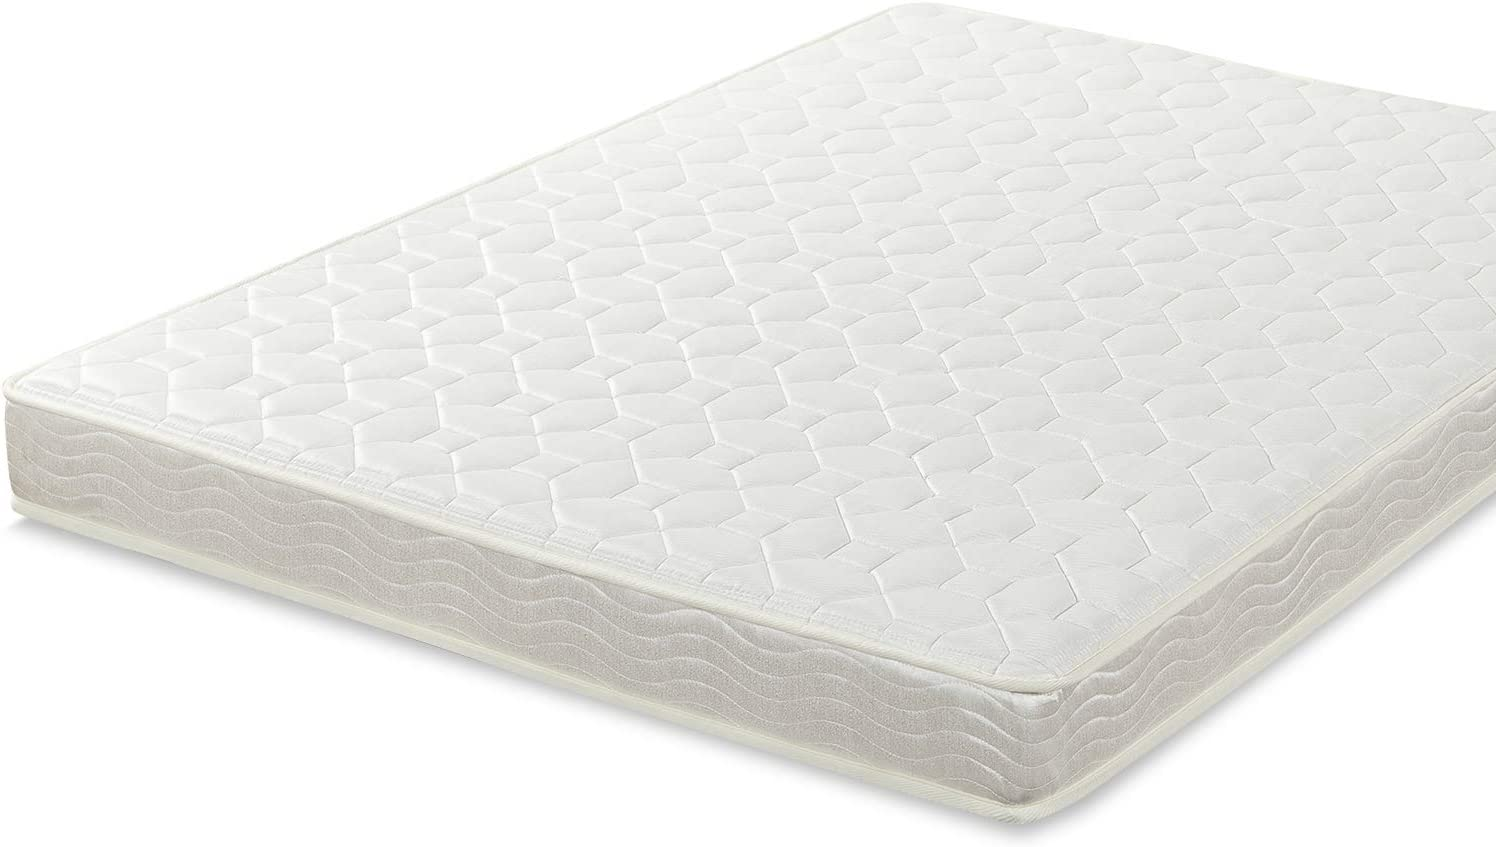 Best Price Mattress Twin Mattress – 6 Inch Tight Top Spring Mattresses Infused with Green Tea, Twin Size